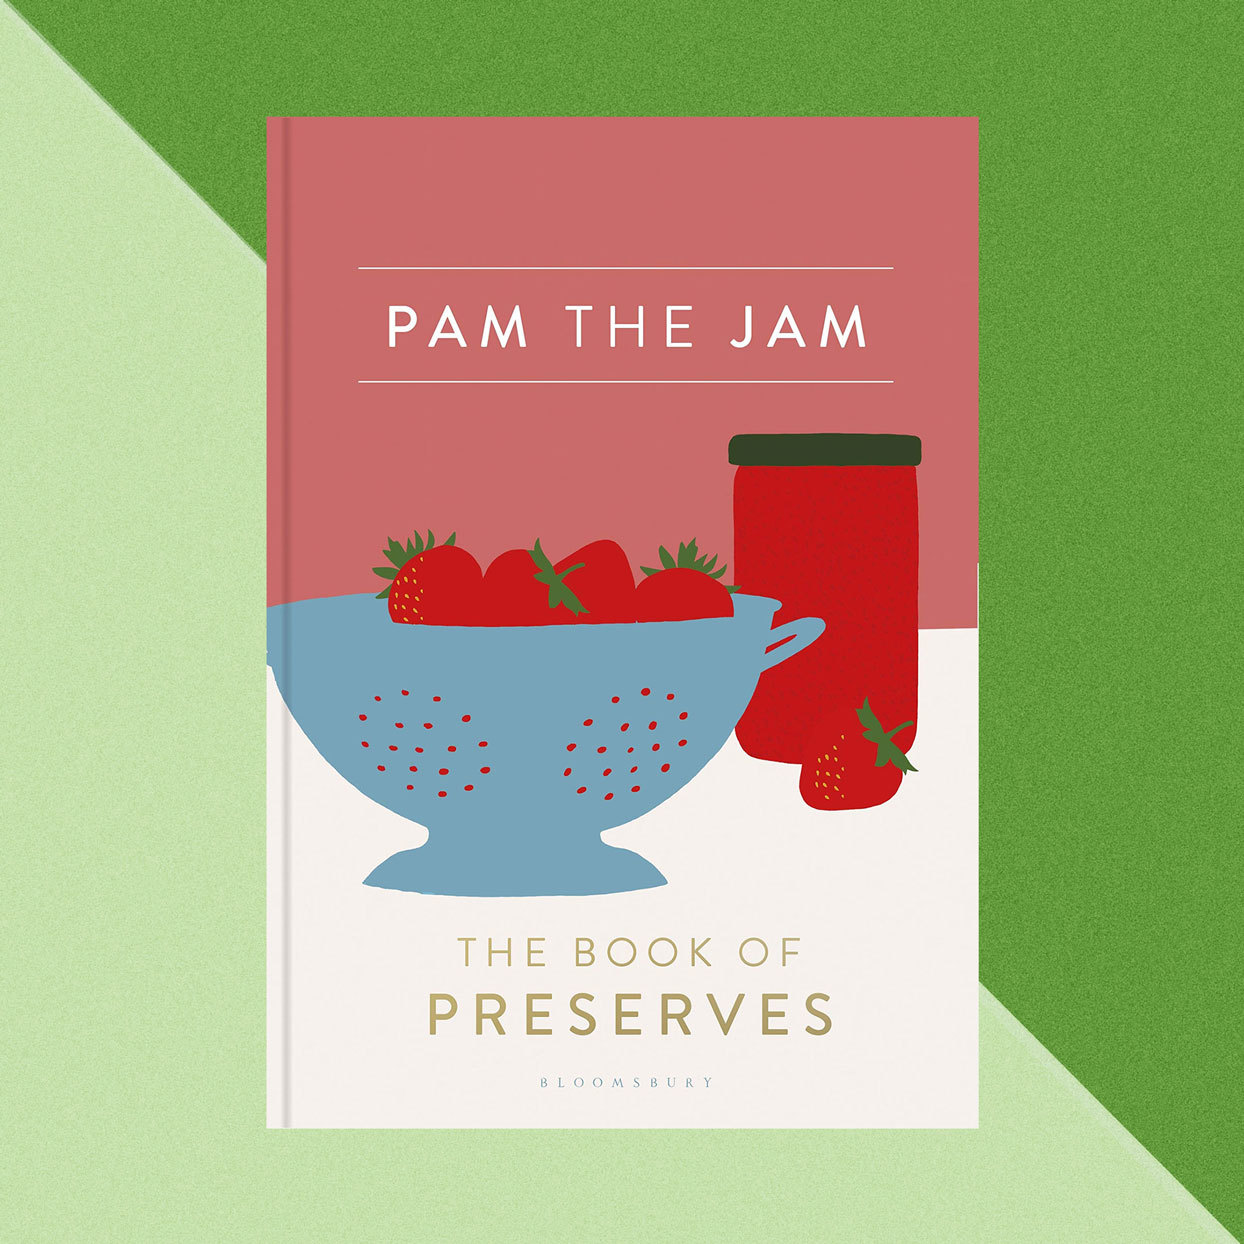 pam the jam cookbook cover